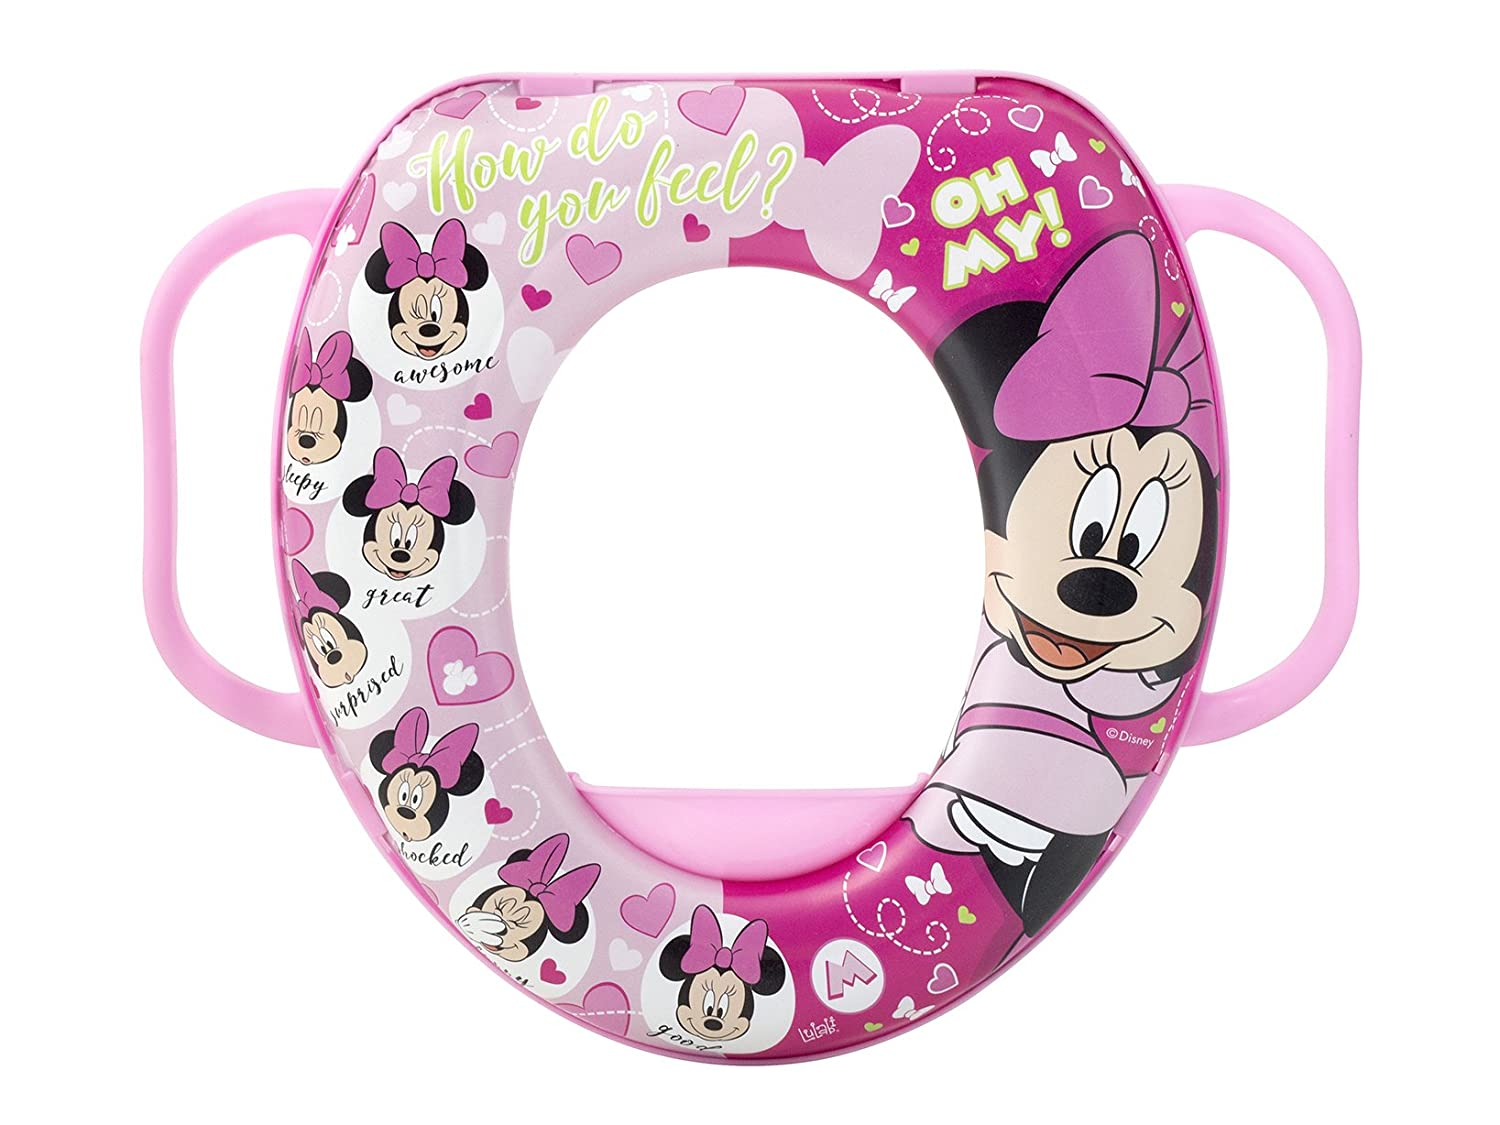 lulabi 8021 Disney Minnie réducteur WC Soft, multicolore 5600